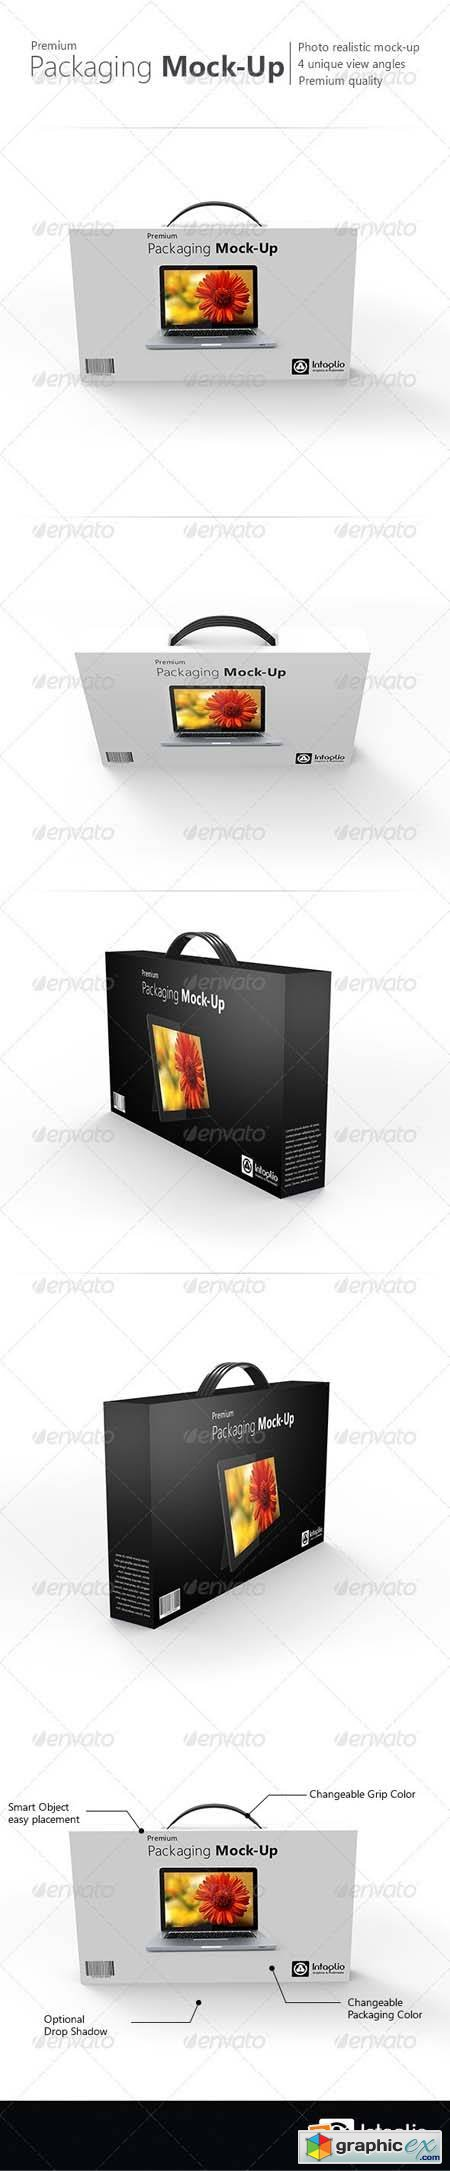 Premium Packaging Mock-Up Template